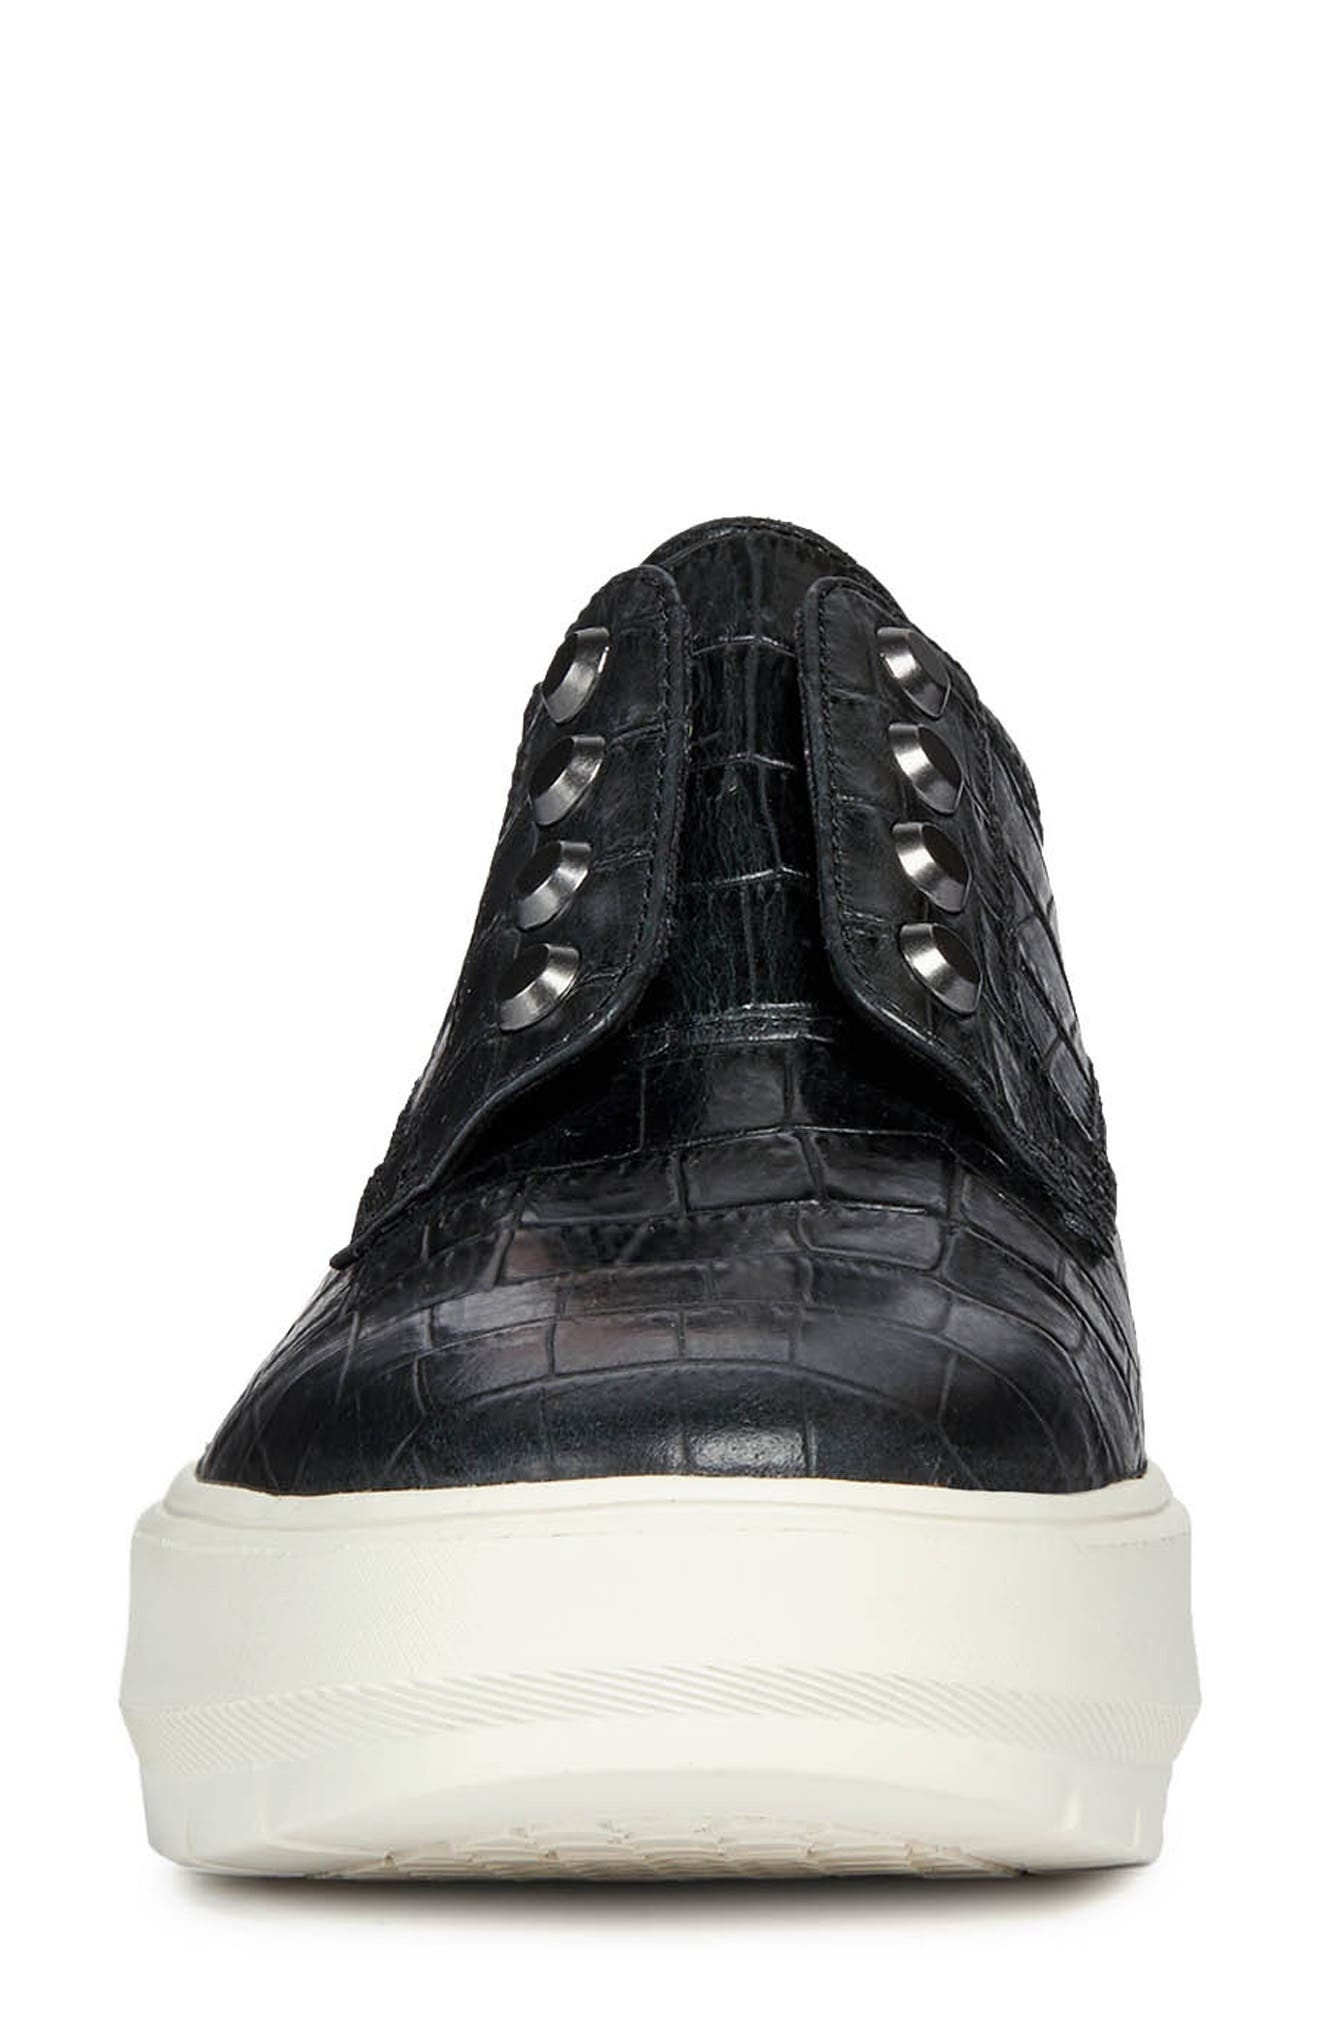 Kaula Sneaker,                             Alternate thumbnail 4, color,                             BLACK LEATHER